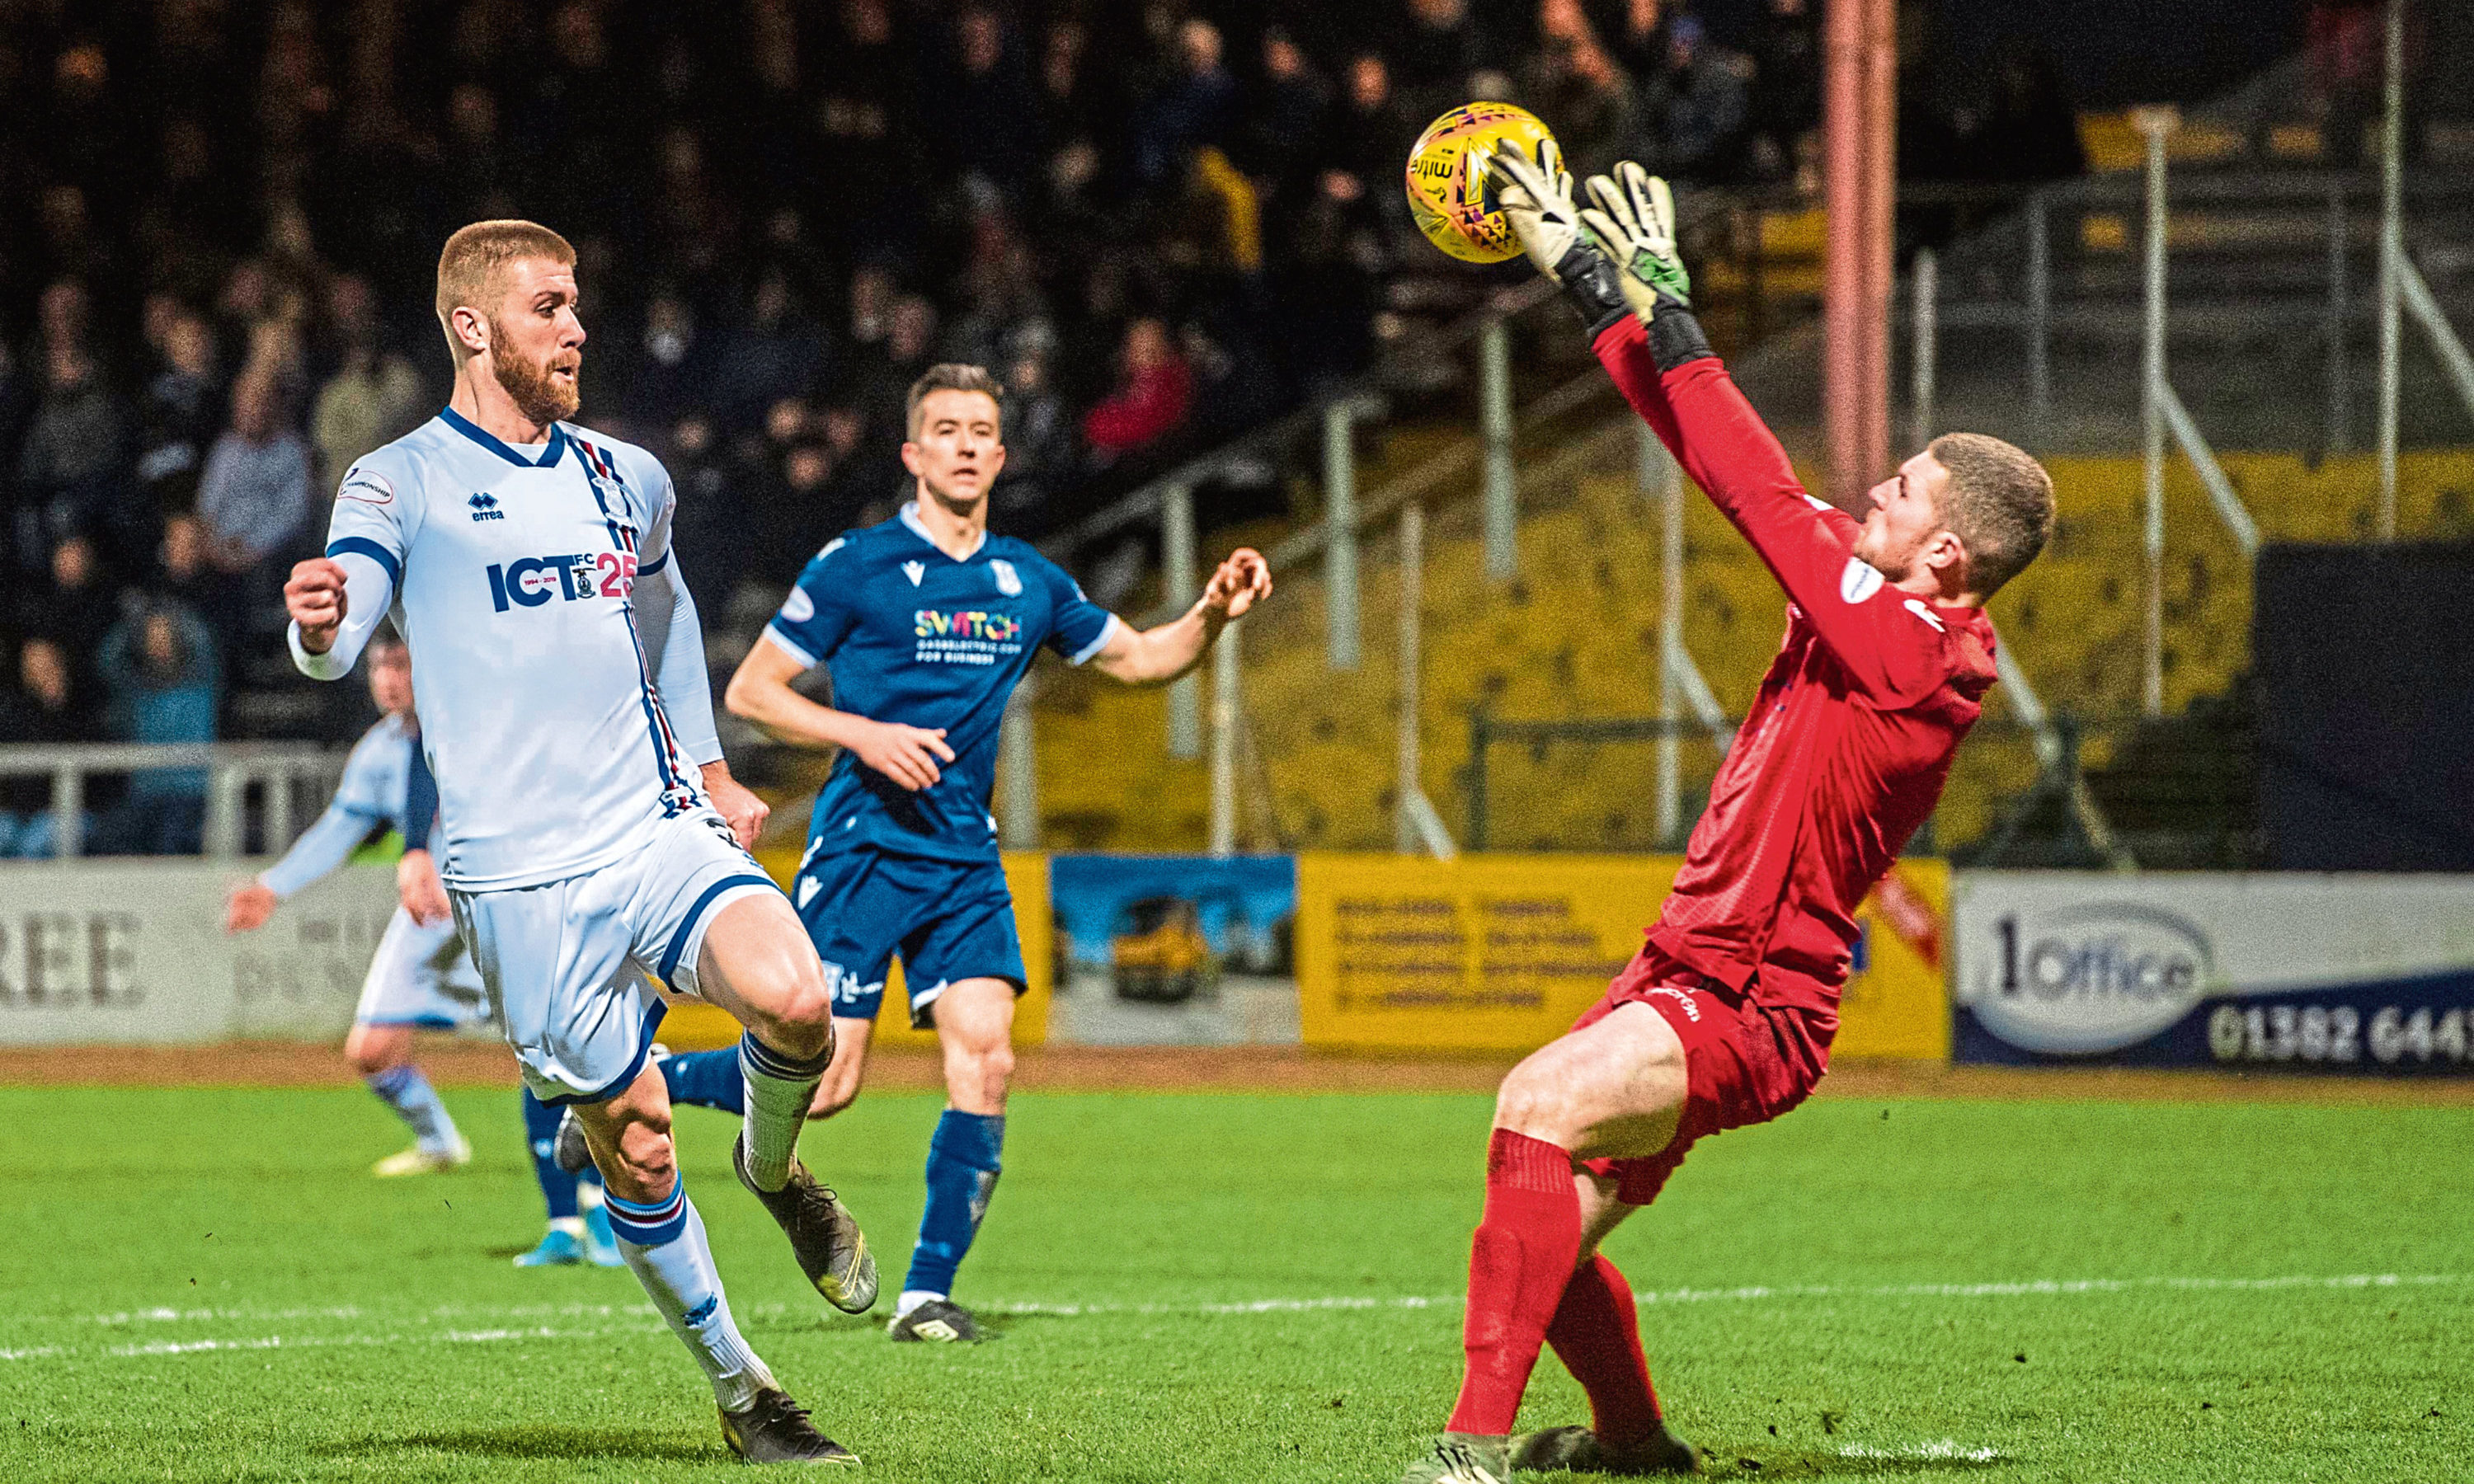 ICT's Shaun Rooney sees his shot saved by Dundee goalkeeper Jack Hamilton.